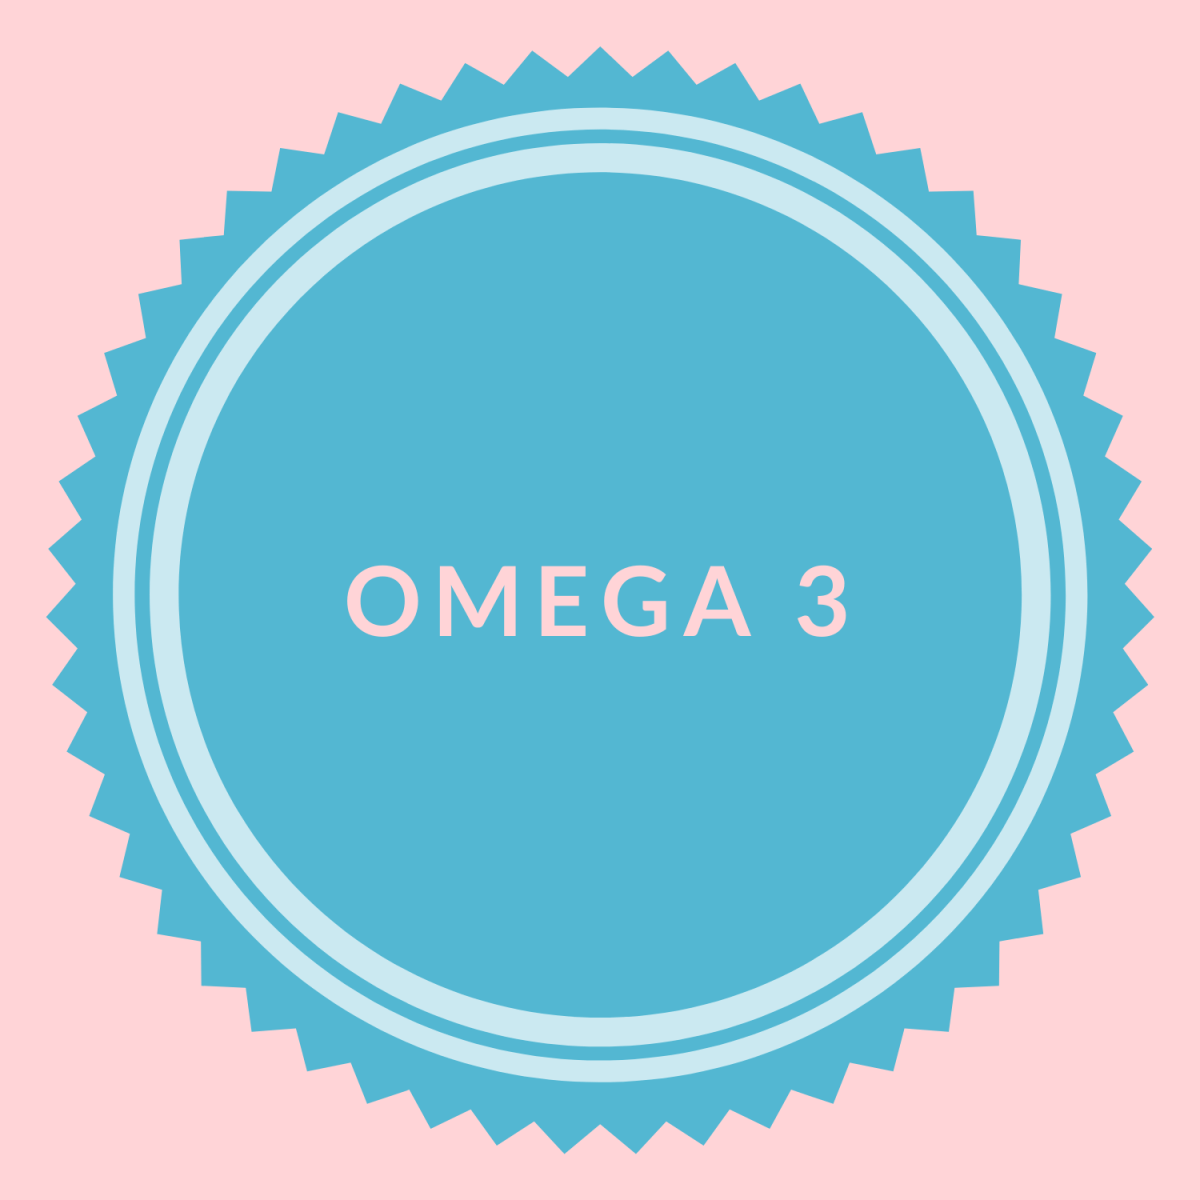 vegan omega 3 logo for health and nutrition article